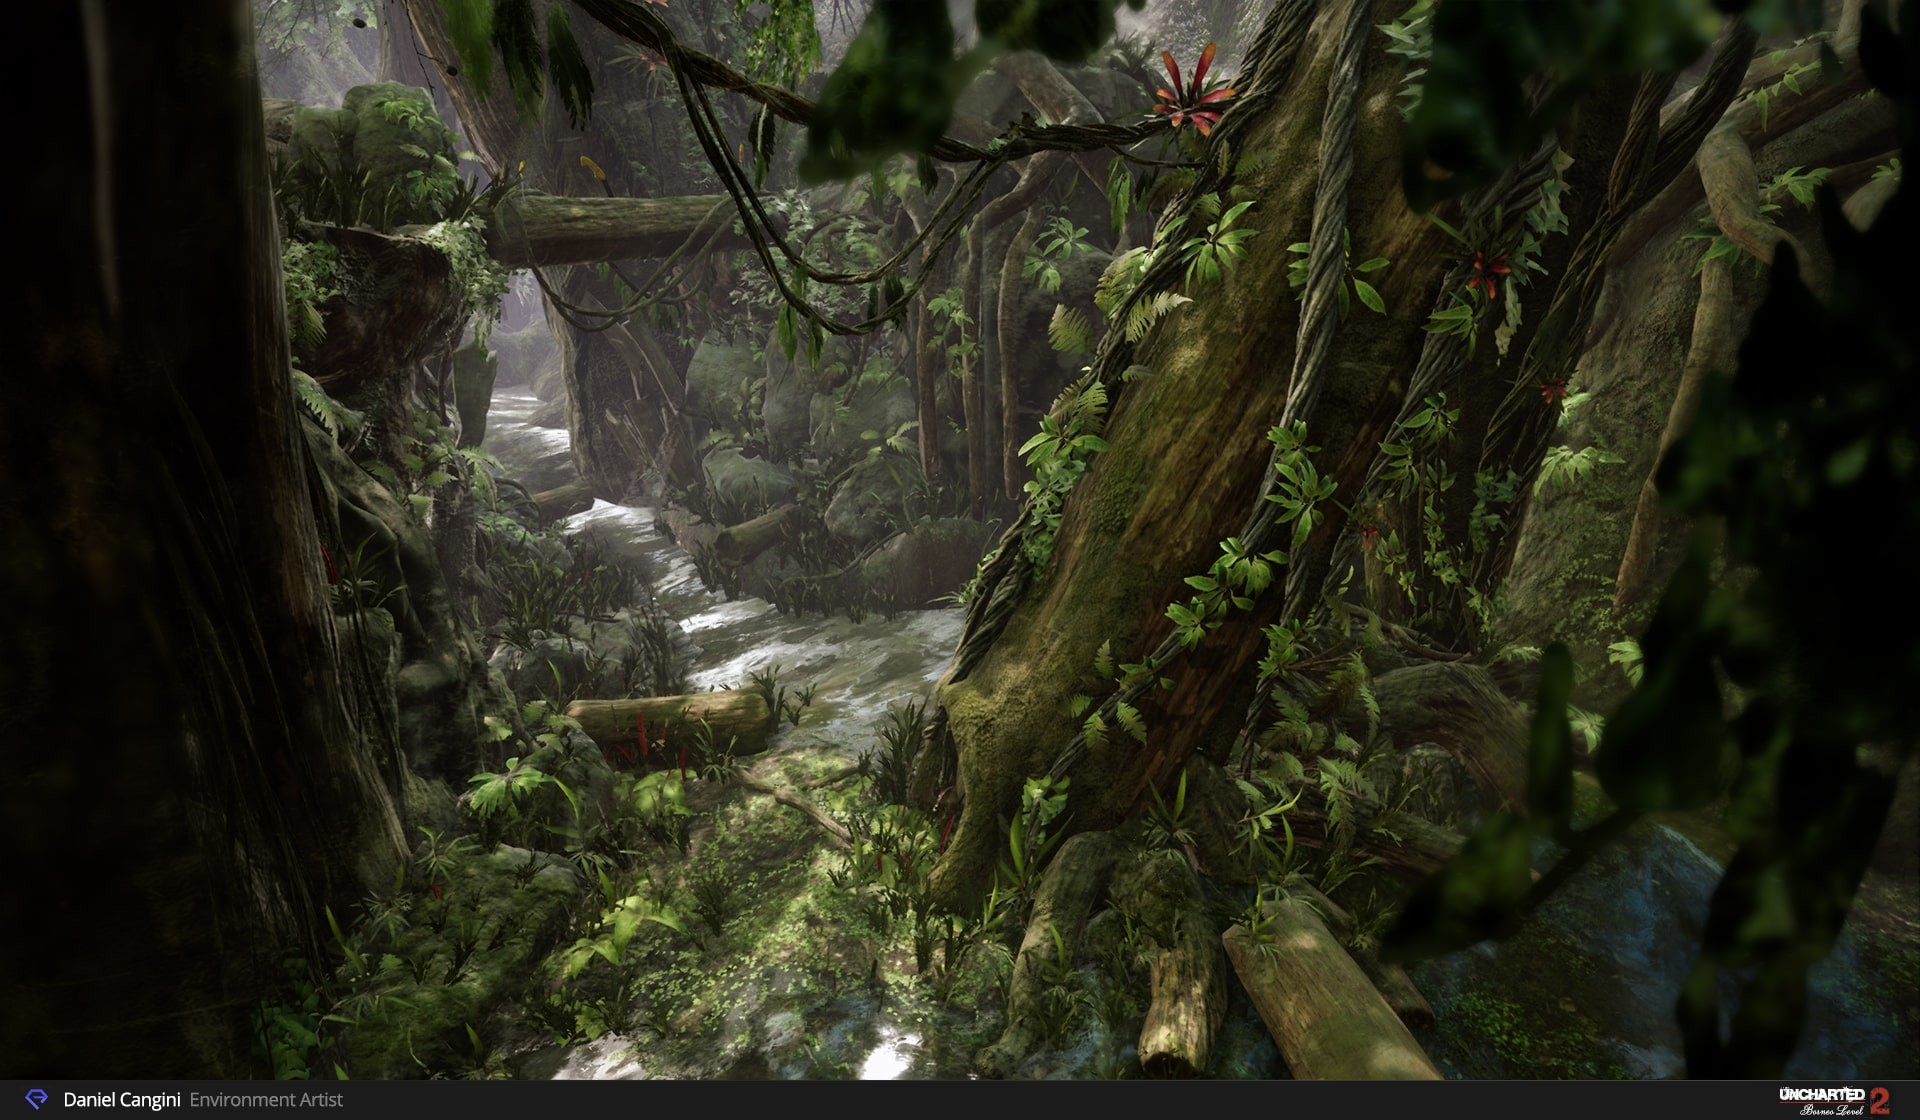 https://i.ibb.co/WnQqsKh/daniel-cangini-03-uncharted2-borneo-day-environment.jpg